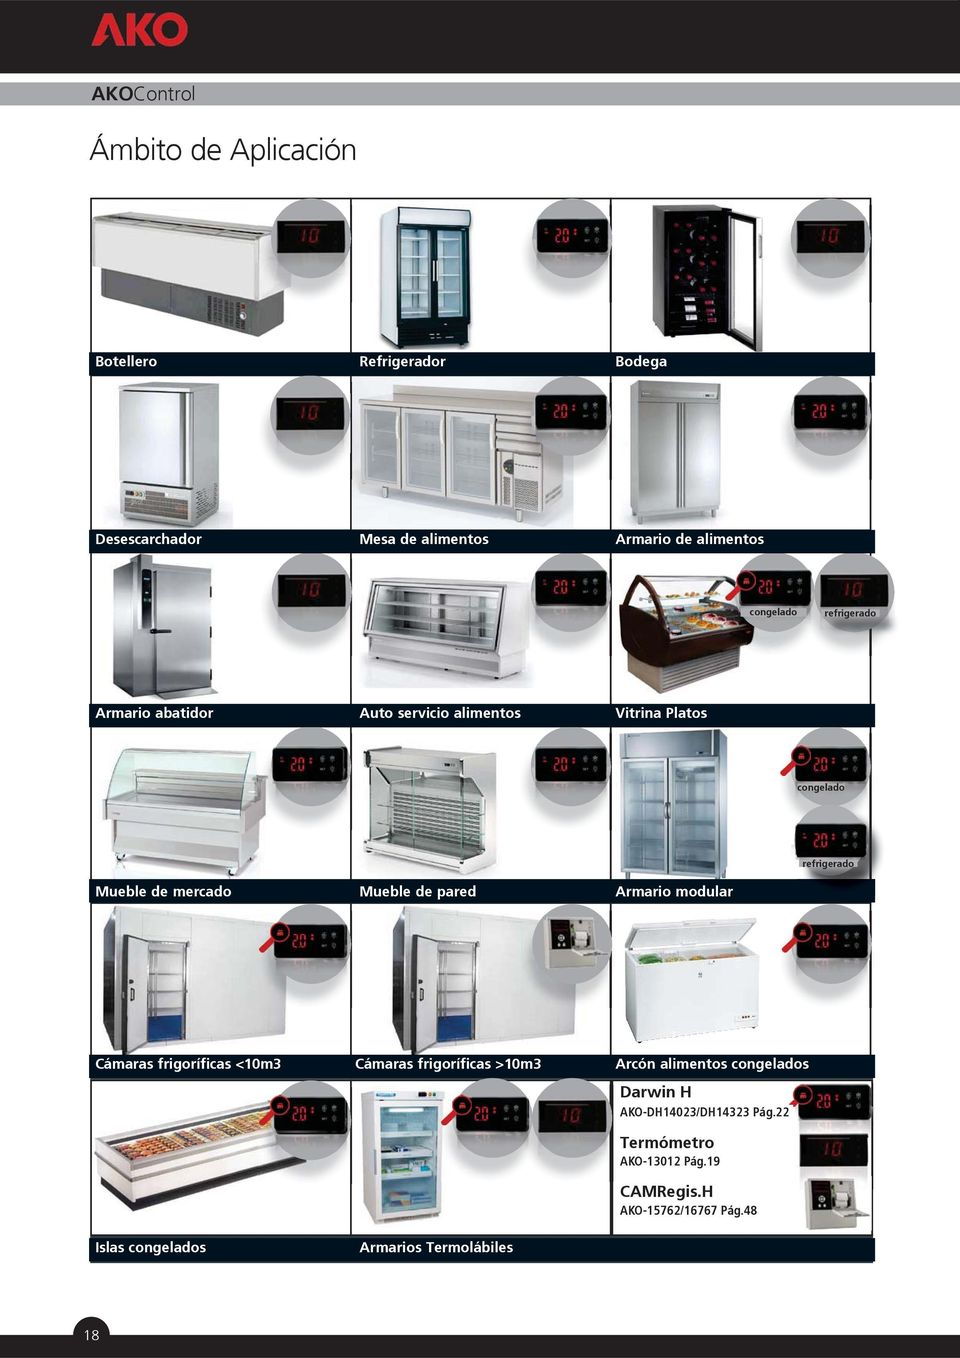 Cabinet Mueble de pared Armario Modular modular Cabinets Modular Cool Rooms <10m3 Modular Cool Rooms >10m3 Cámaras frigoríficas <10m3 Cámaras frigoríficas >10m3 Food Chest Coolers Arcón alimentos